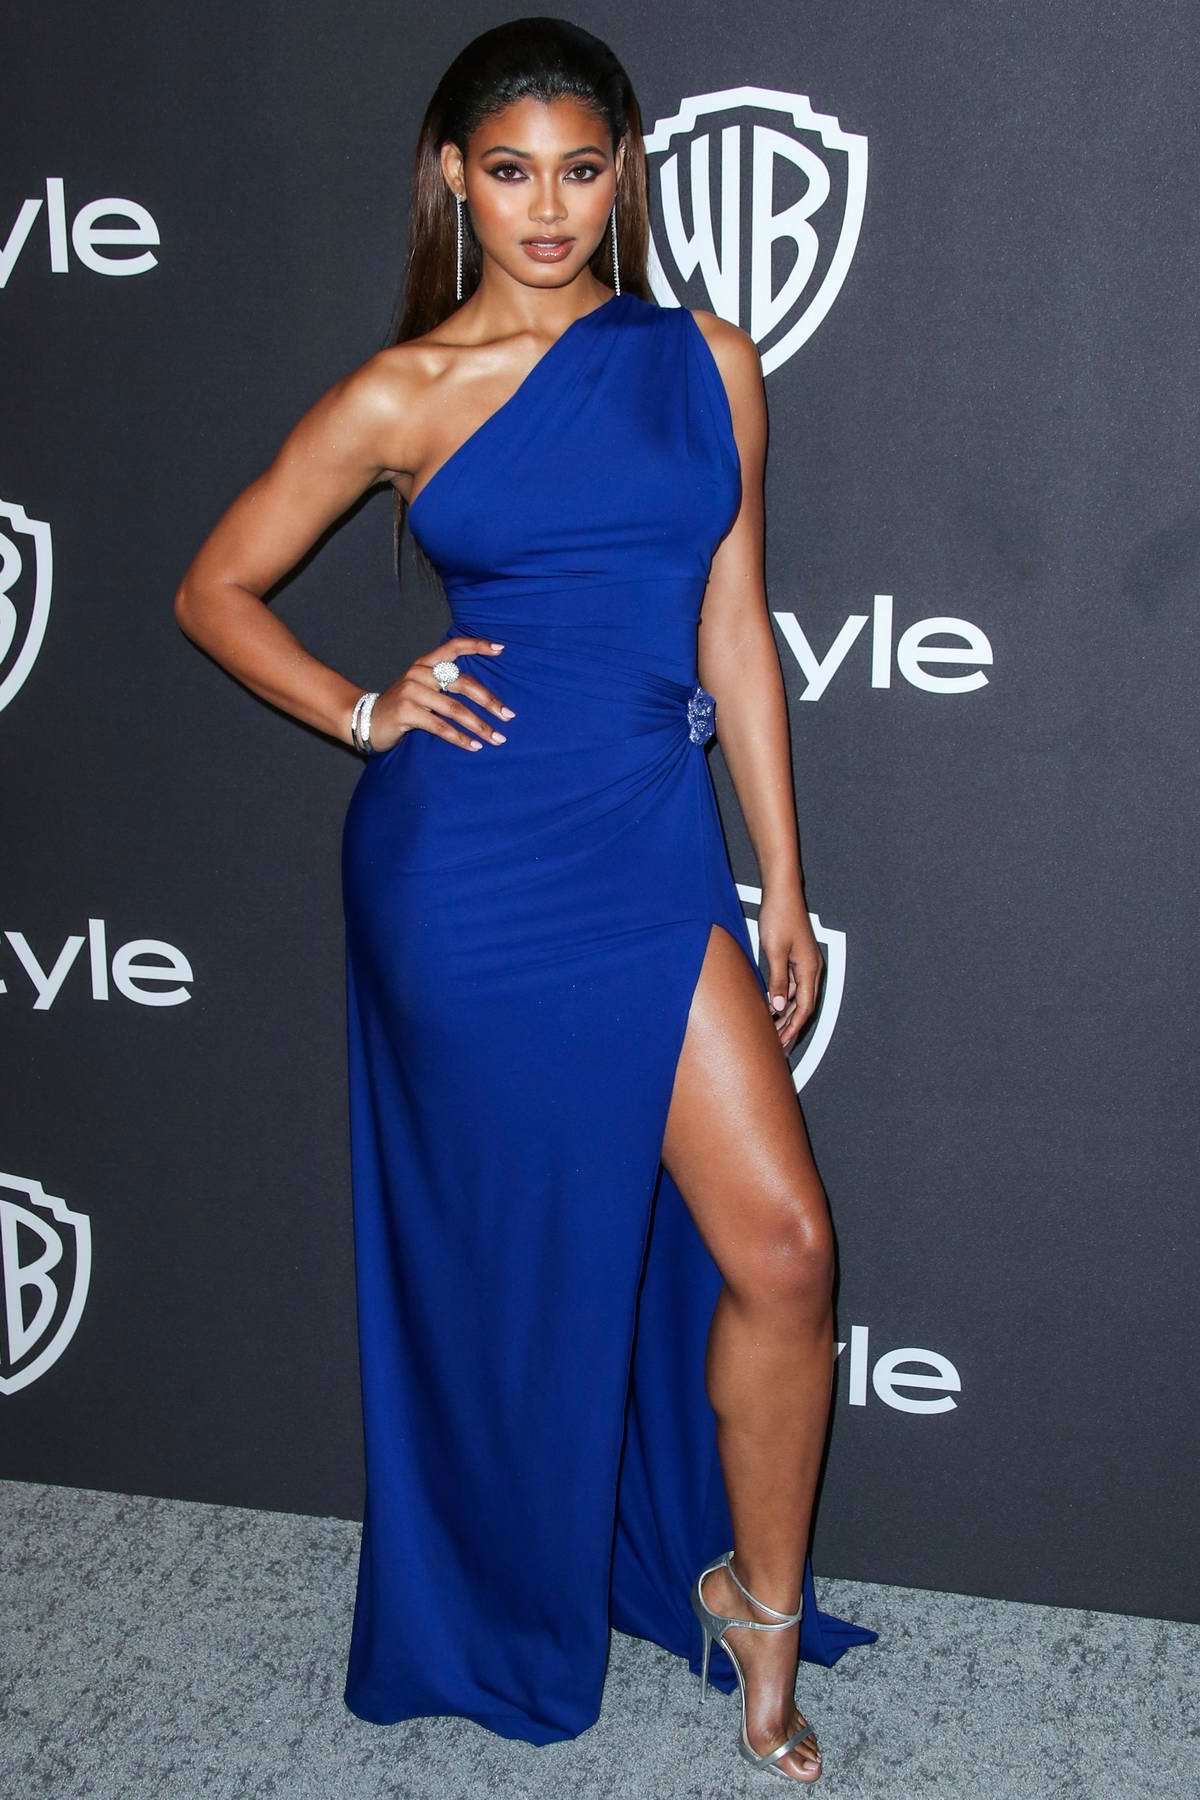 Danielle Herrington attends InStyle and Warner Bros Golden Globe After Party 2019 at Beverly Hilton Hotel in Beverly Hills, California